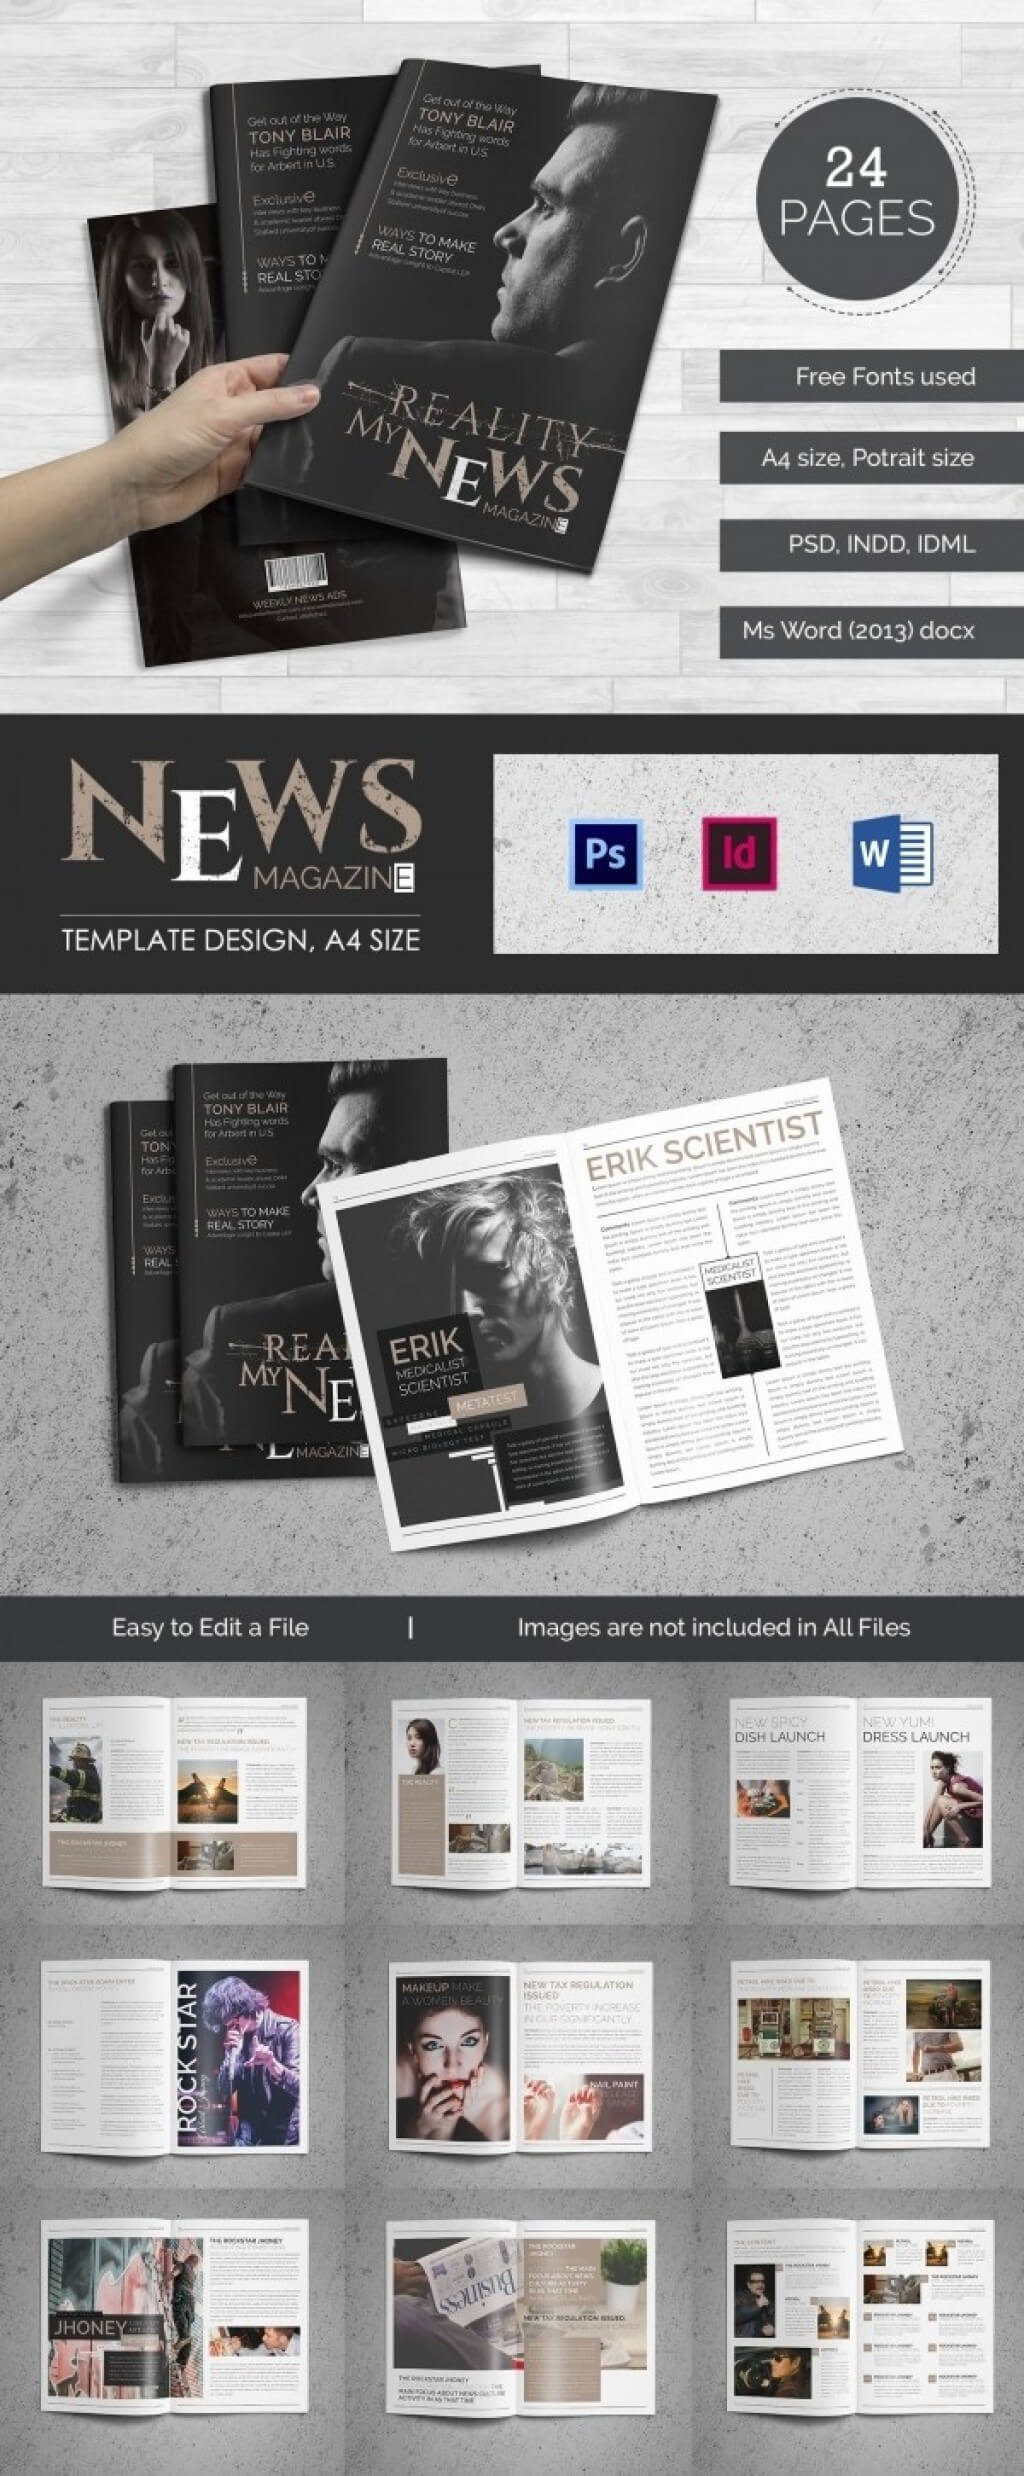 025 Template Ideas Magazine Free Word 4 R Unforgettable intended for Magazine Template For Microsoft Word